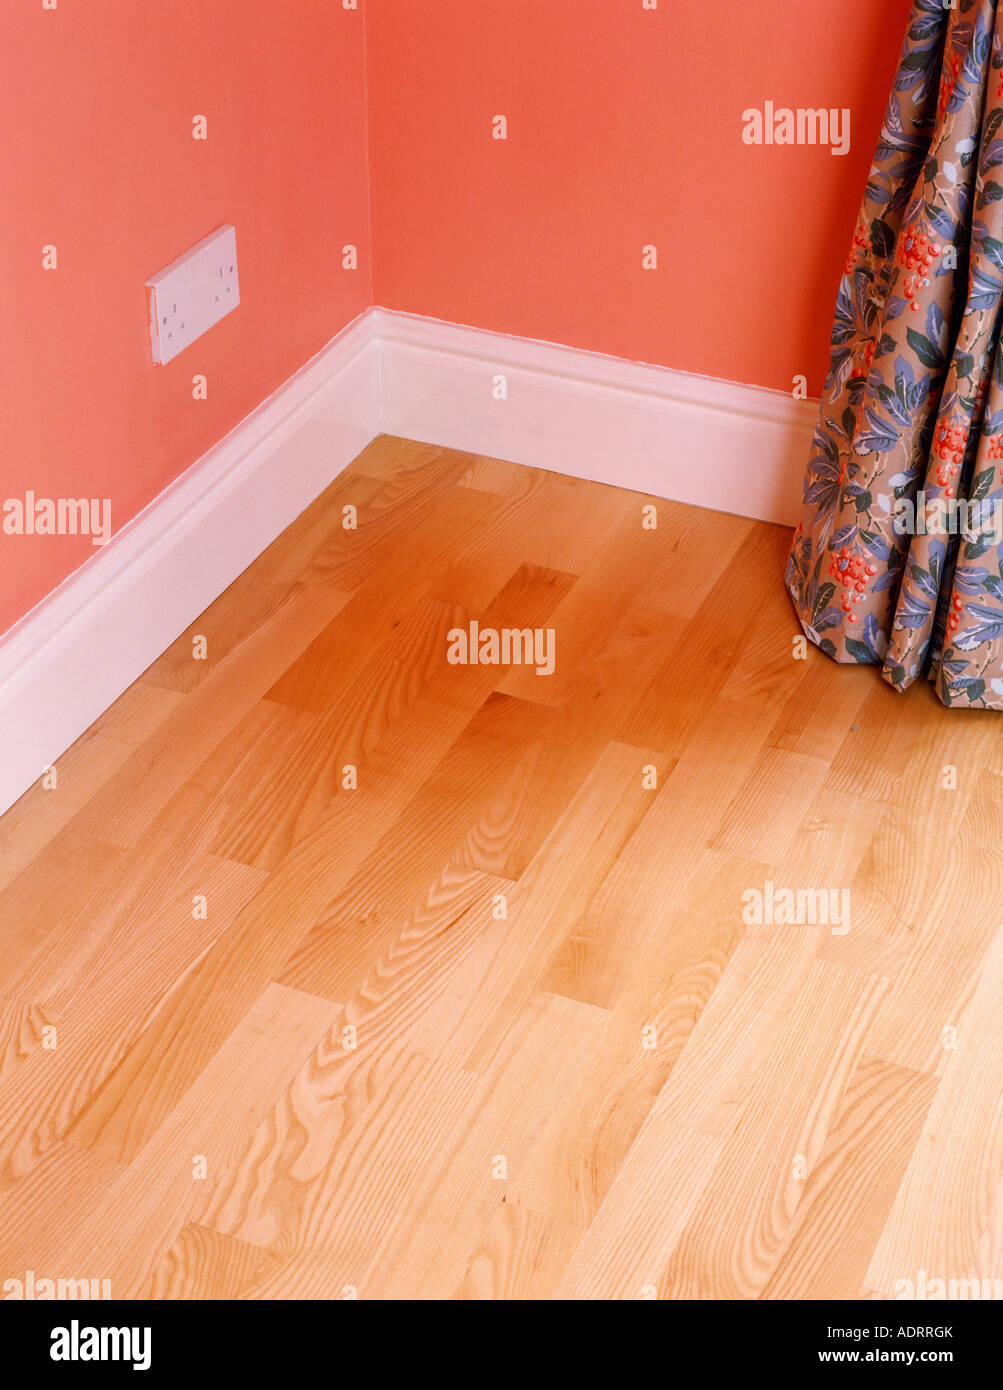 Corner Of Room With Laminate Wood Floor And White Skirting